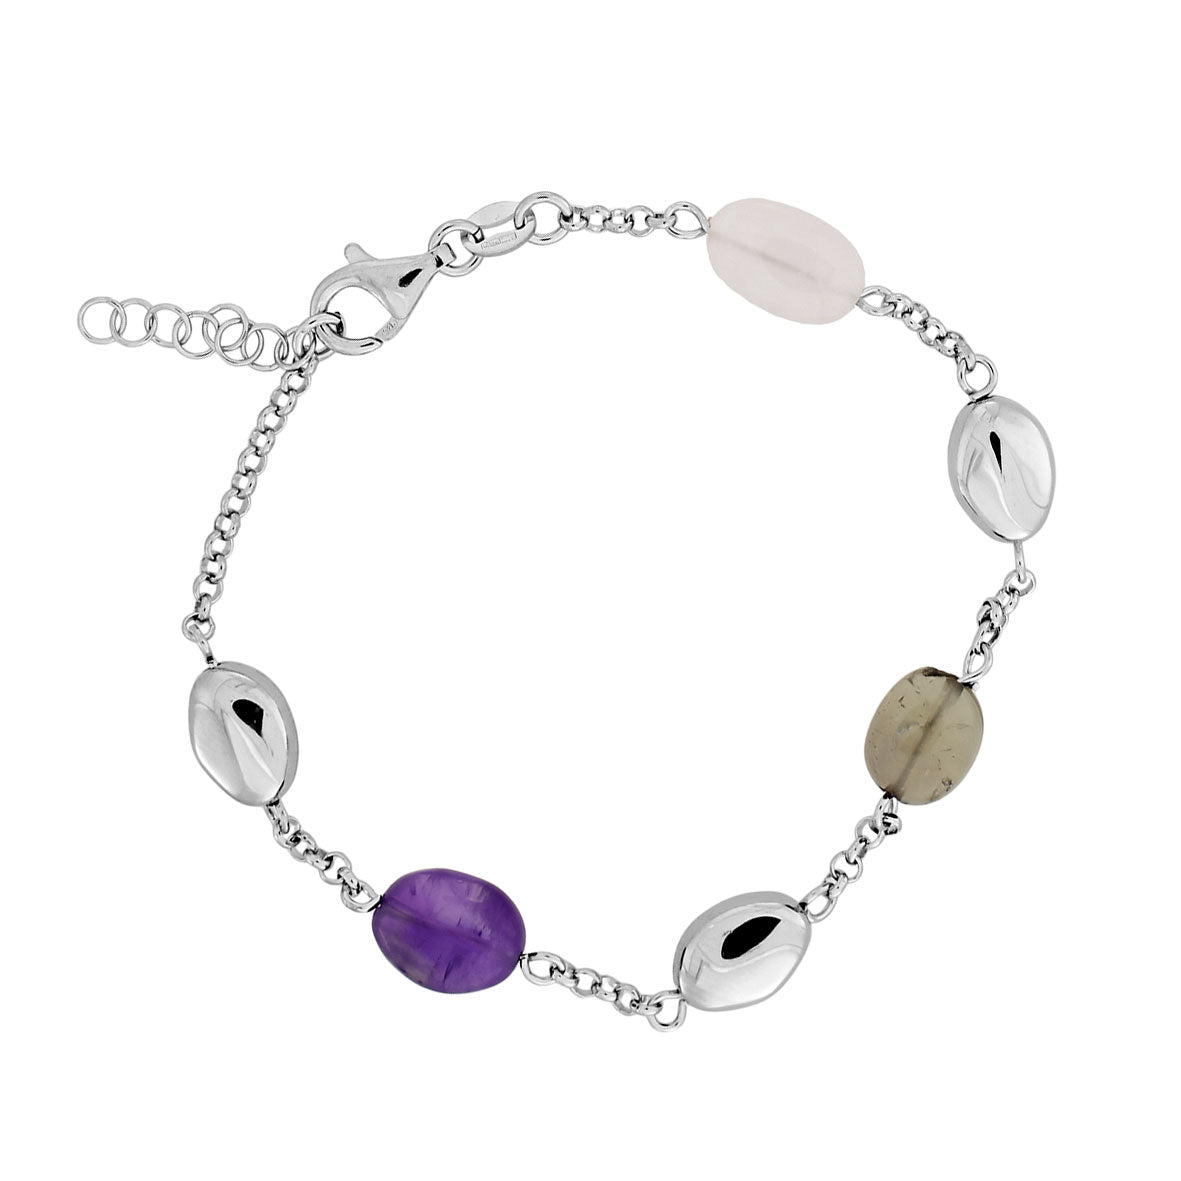 Malham Silver Bracelet with Amethyst and Quartz